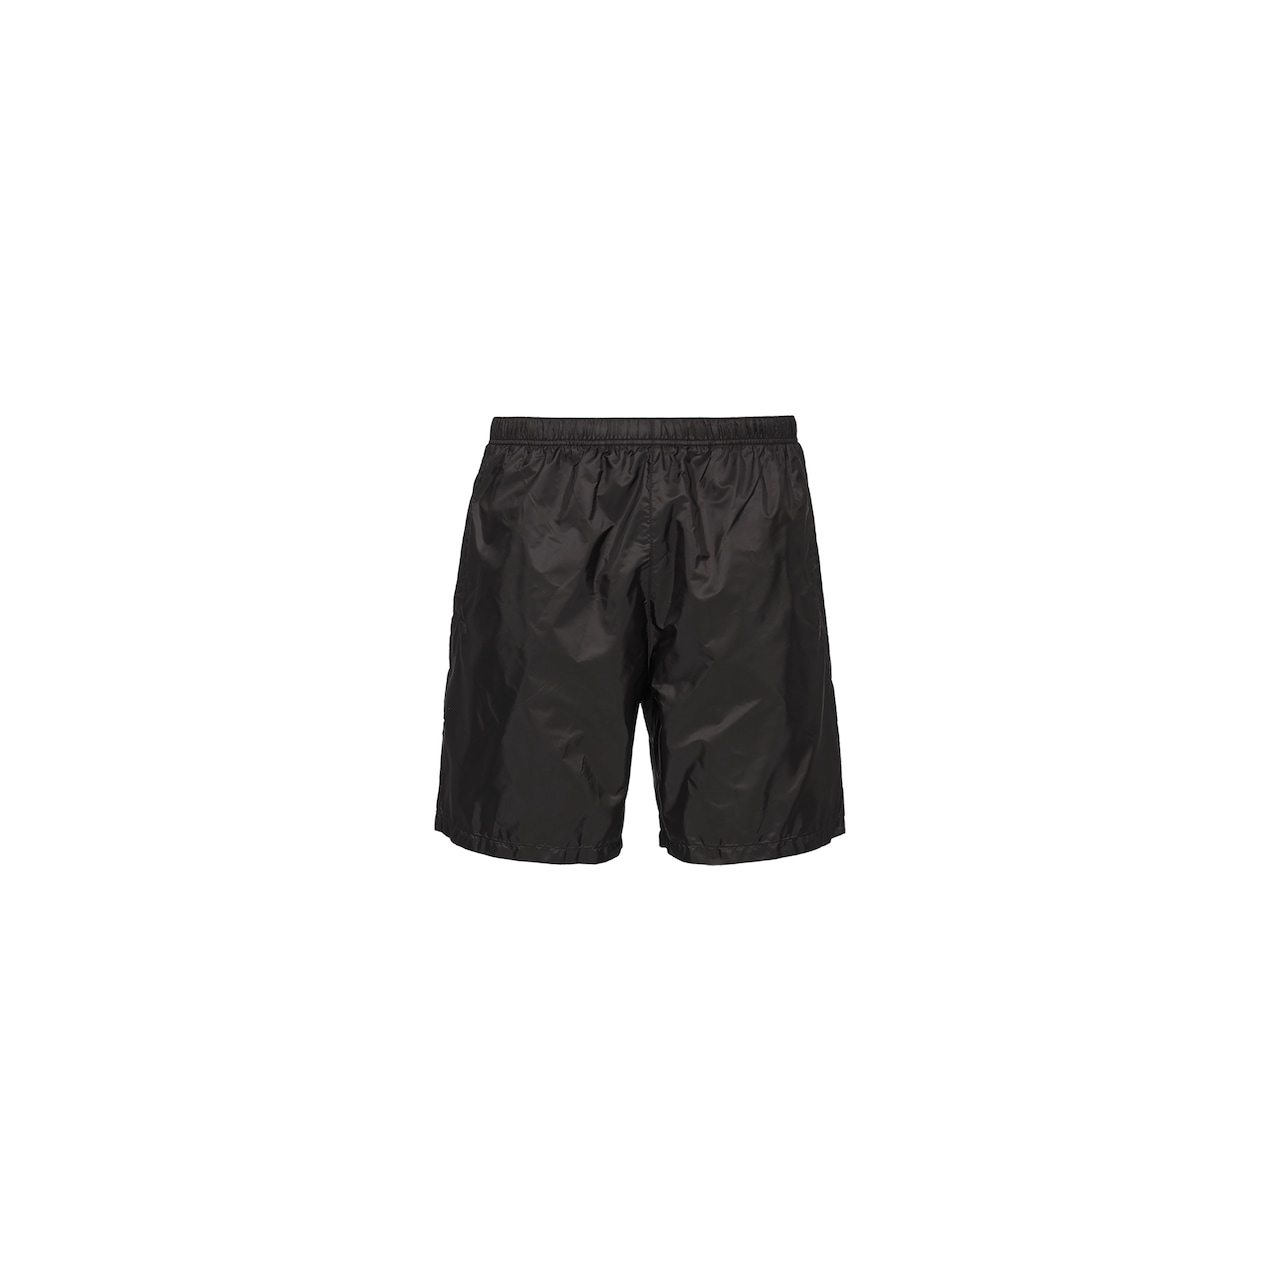 Prada Nylon swim trunks 1